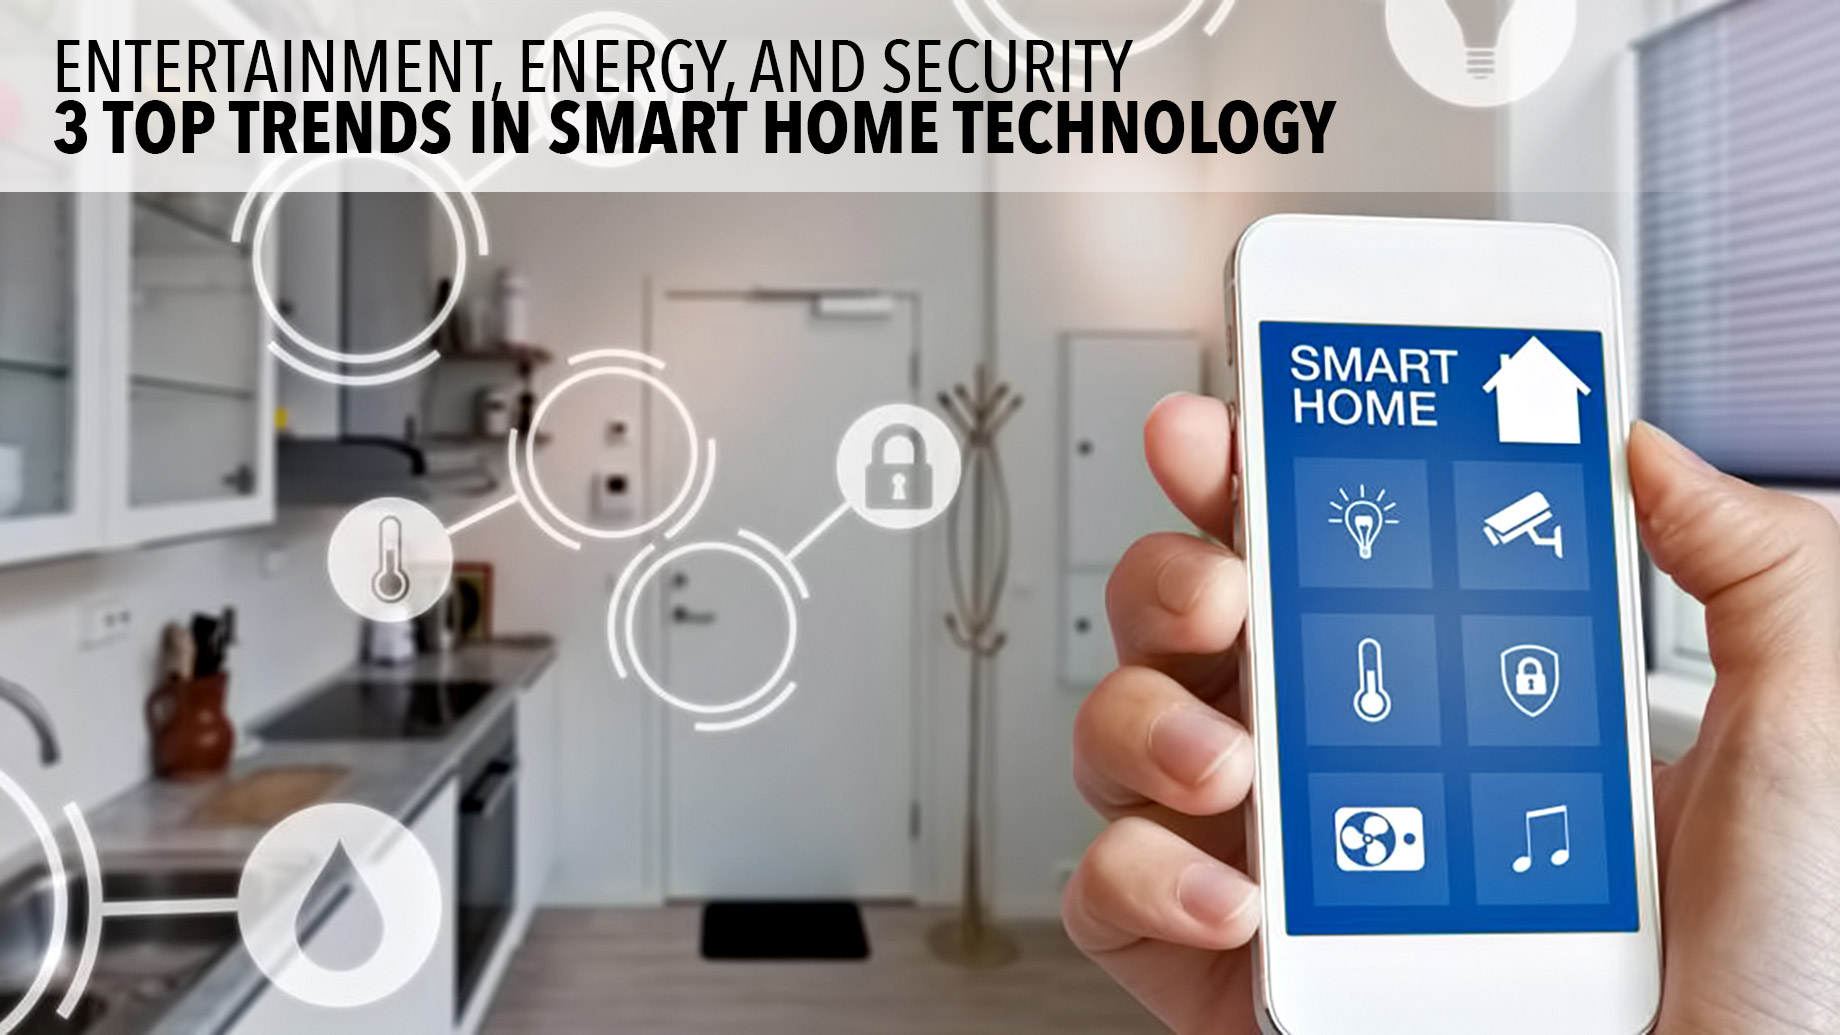 Entertainment, Energy, and Security - 3 Top Trends in Smart Home Technology